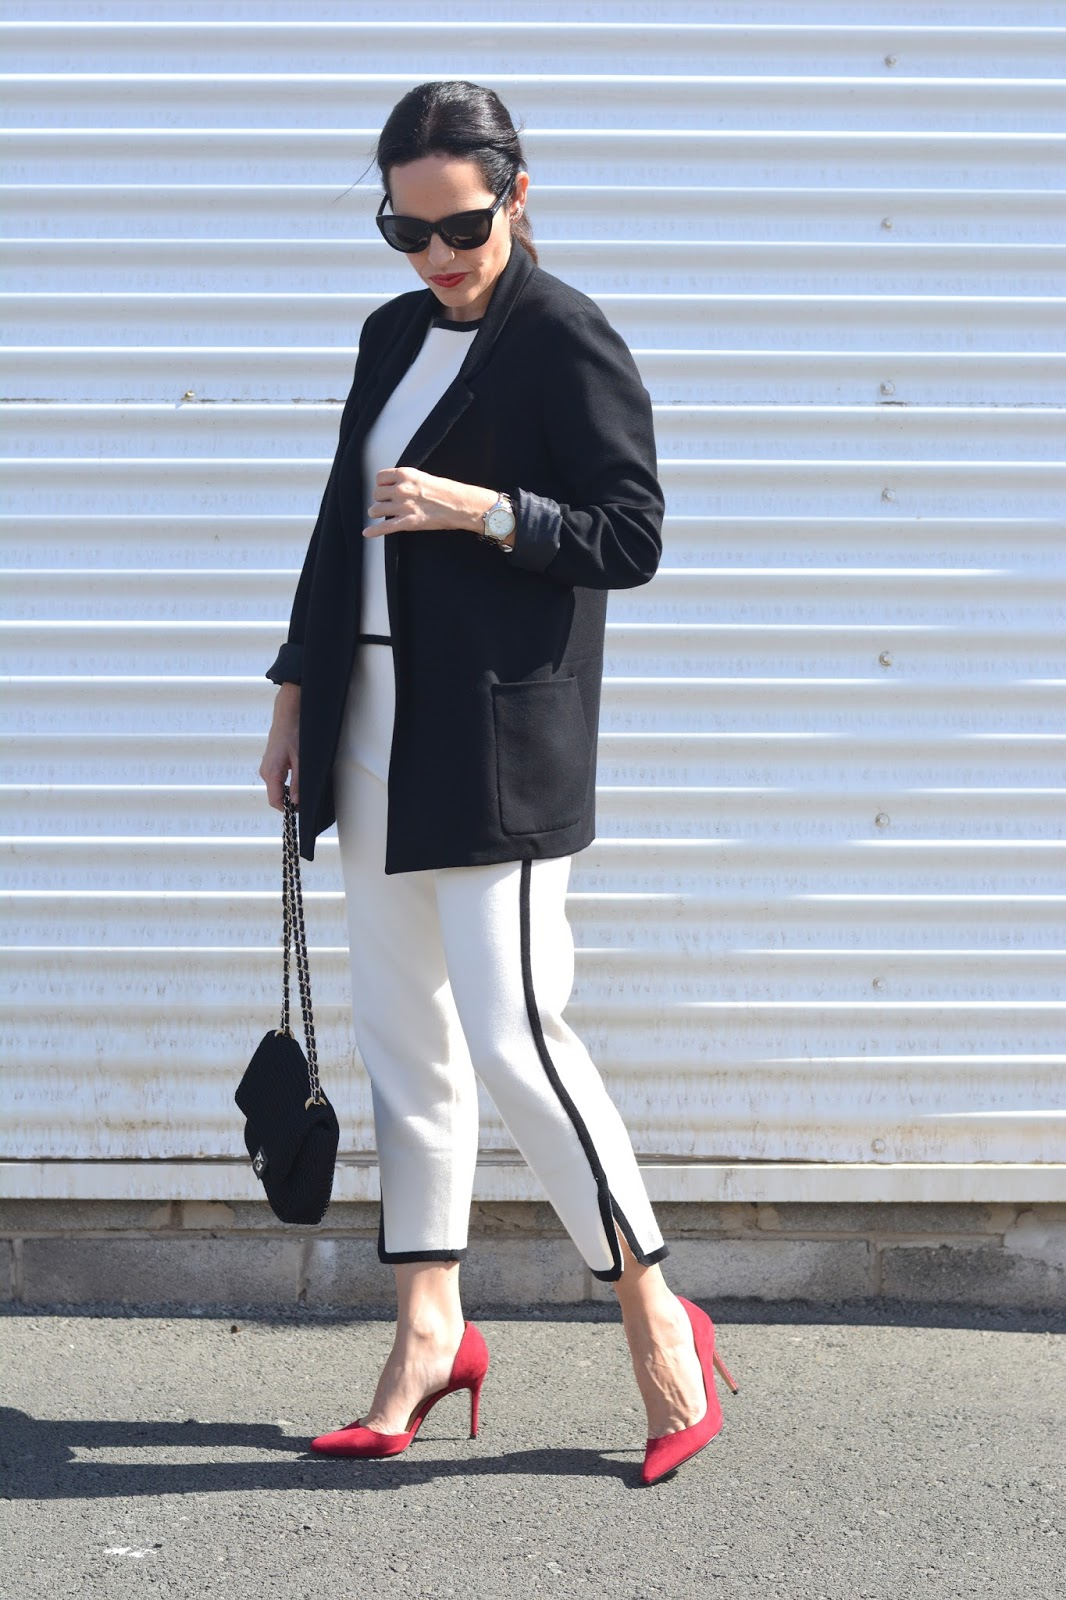 black-white-office-look-personal-shopper